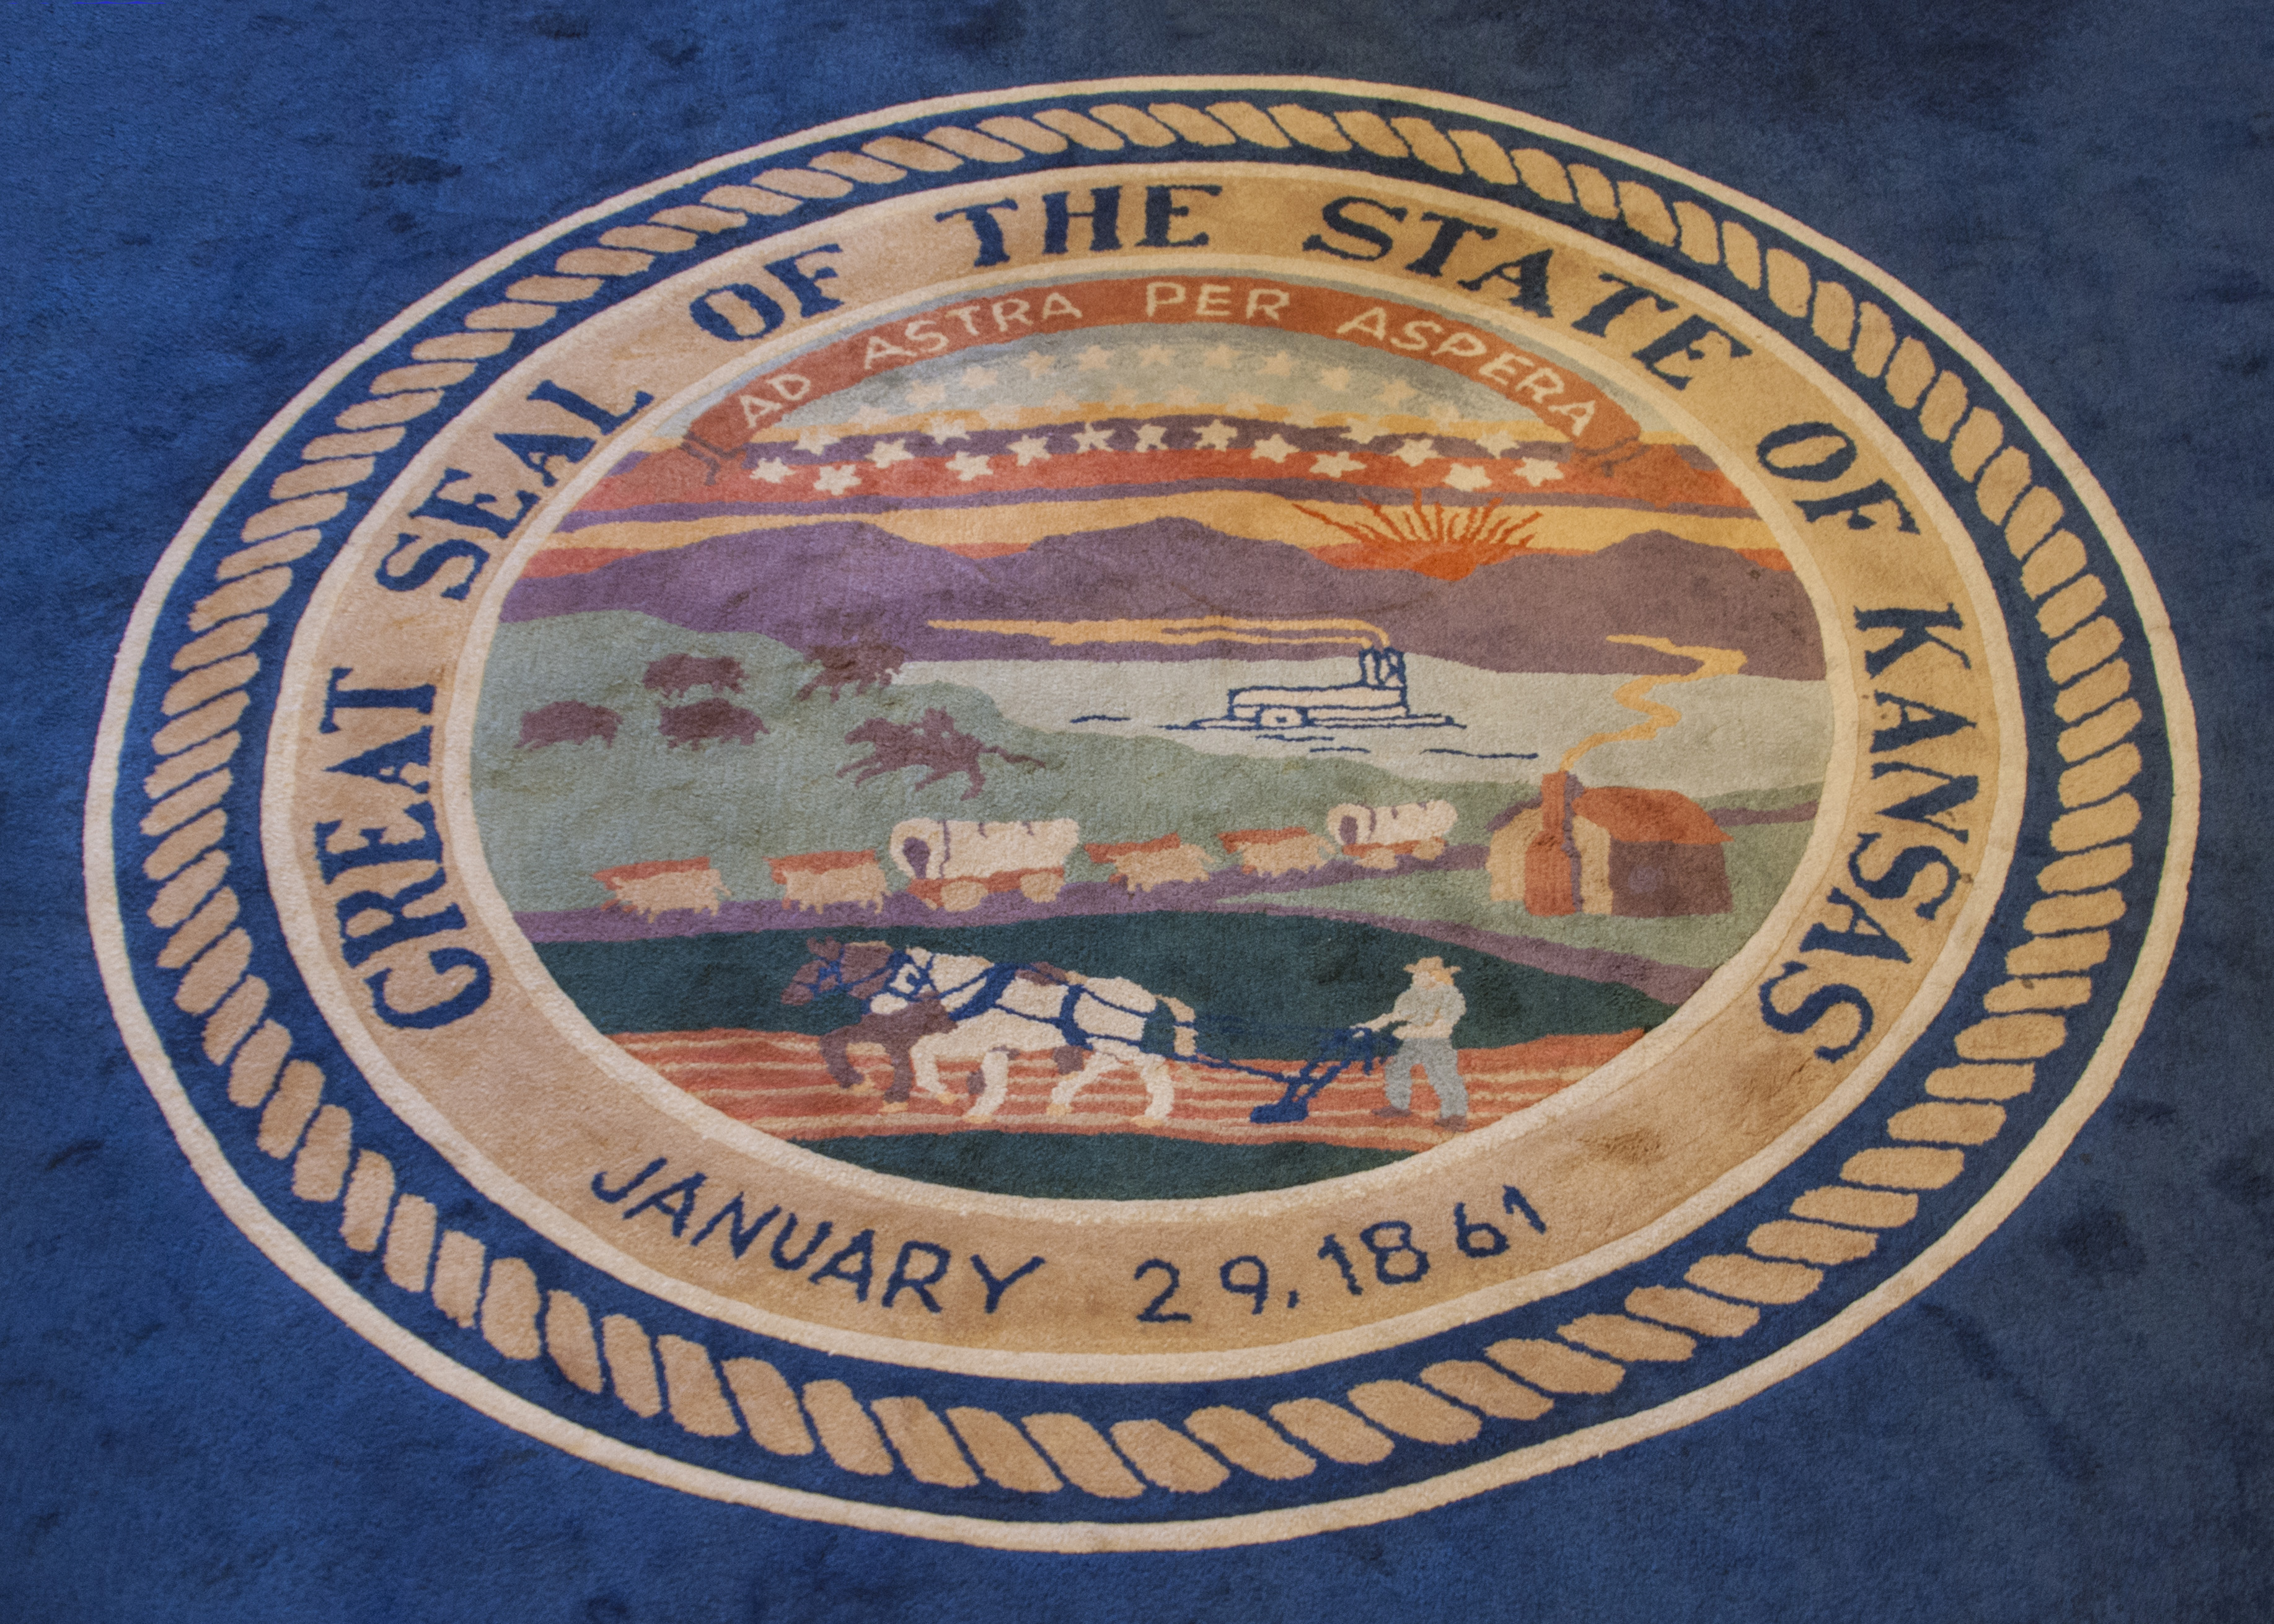 Great seal of the great State of Kansas, as depicted in this rug inside the governor's office at the Kansas Statehouse. (Photo by Dan Skinner)